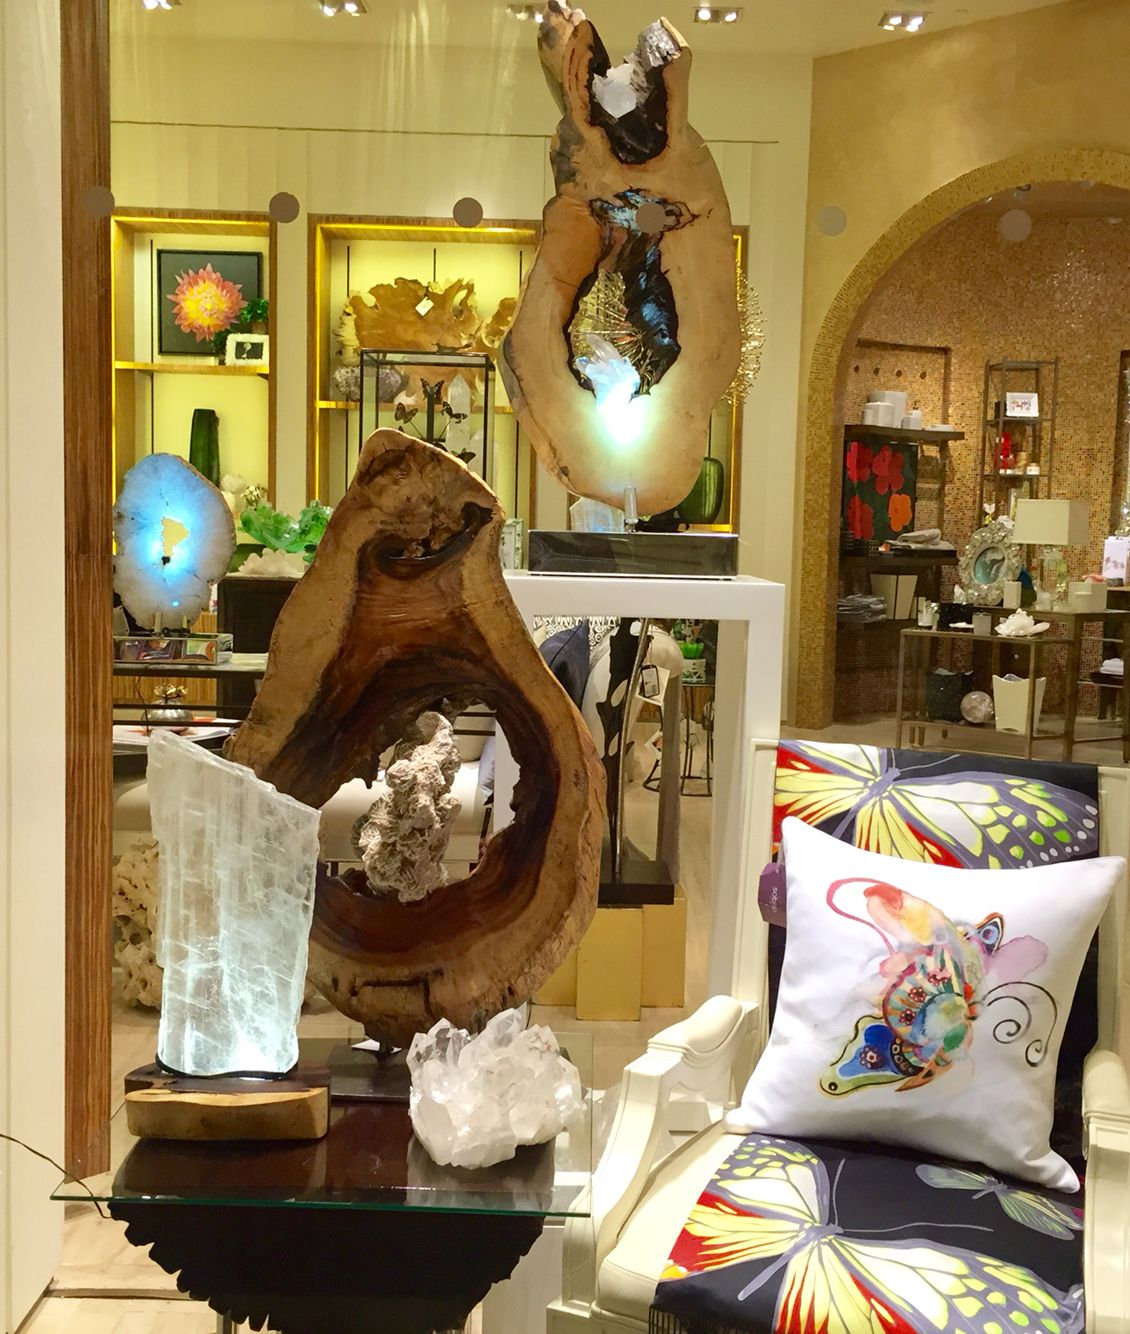 Feeling At Home At The Home Store Wynn Las Vegas.